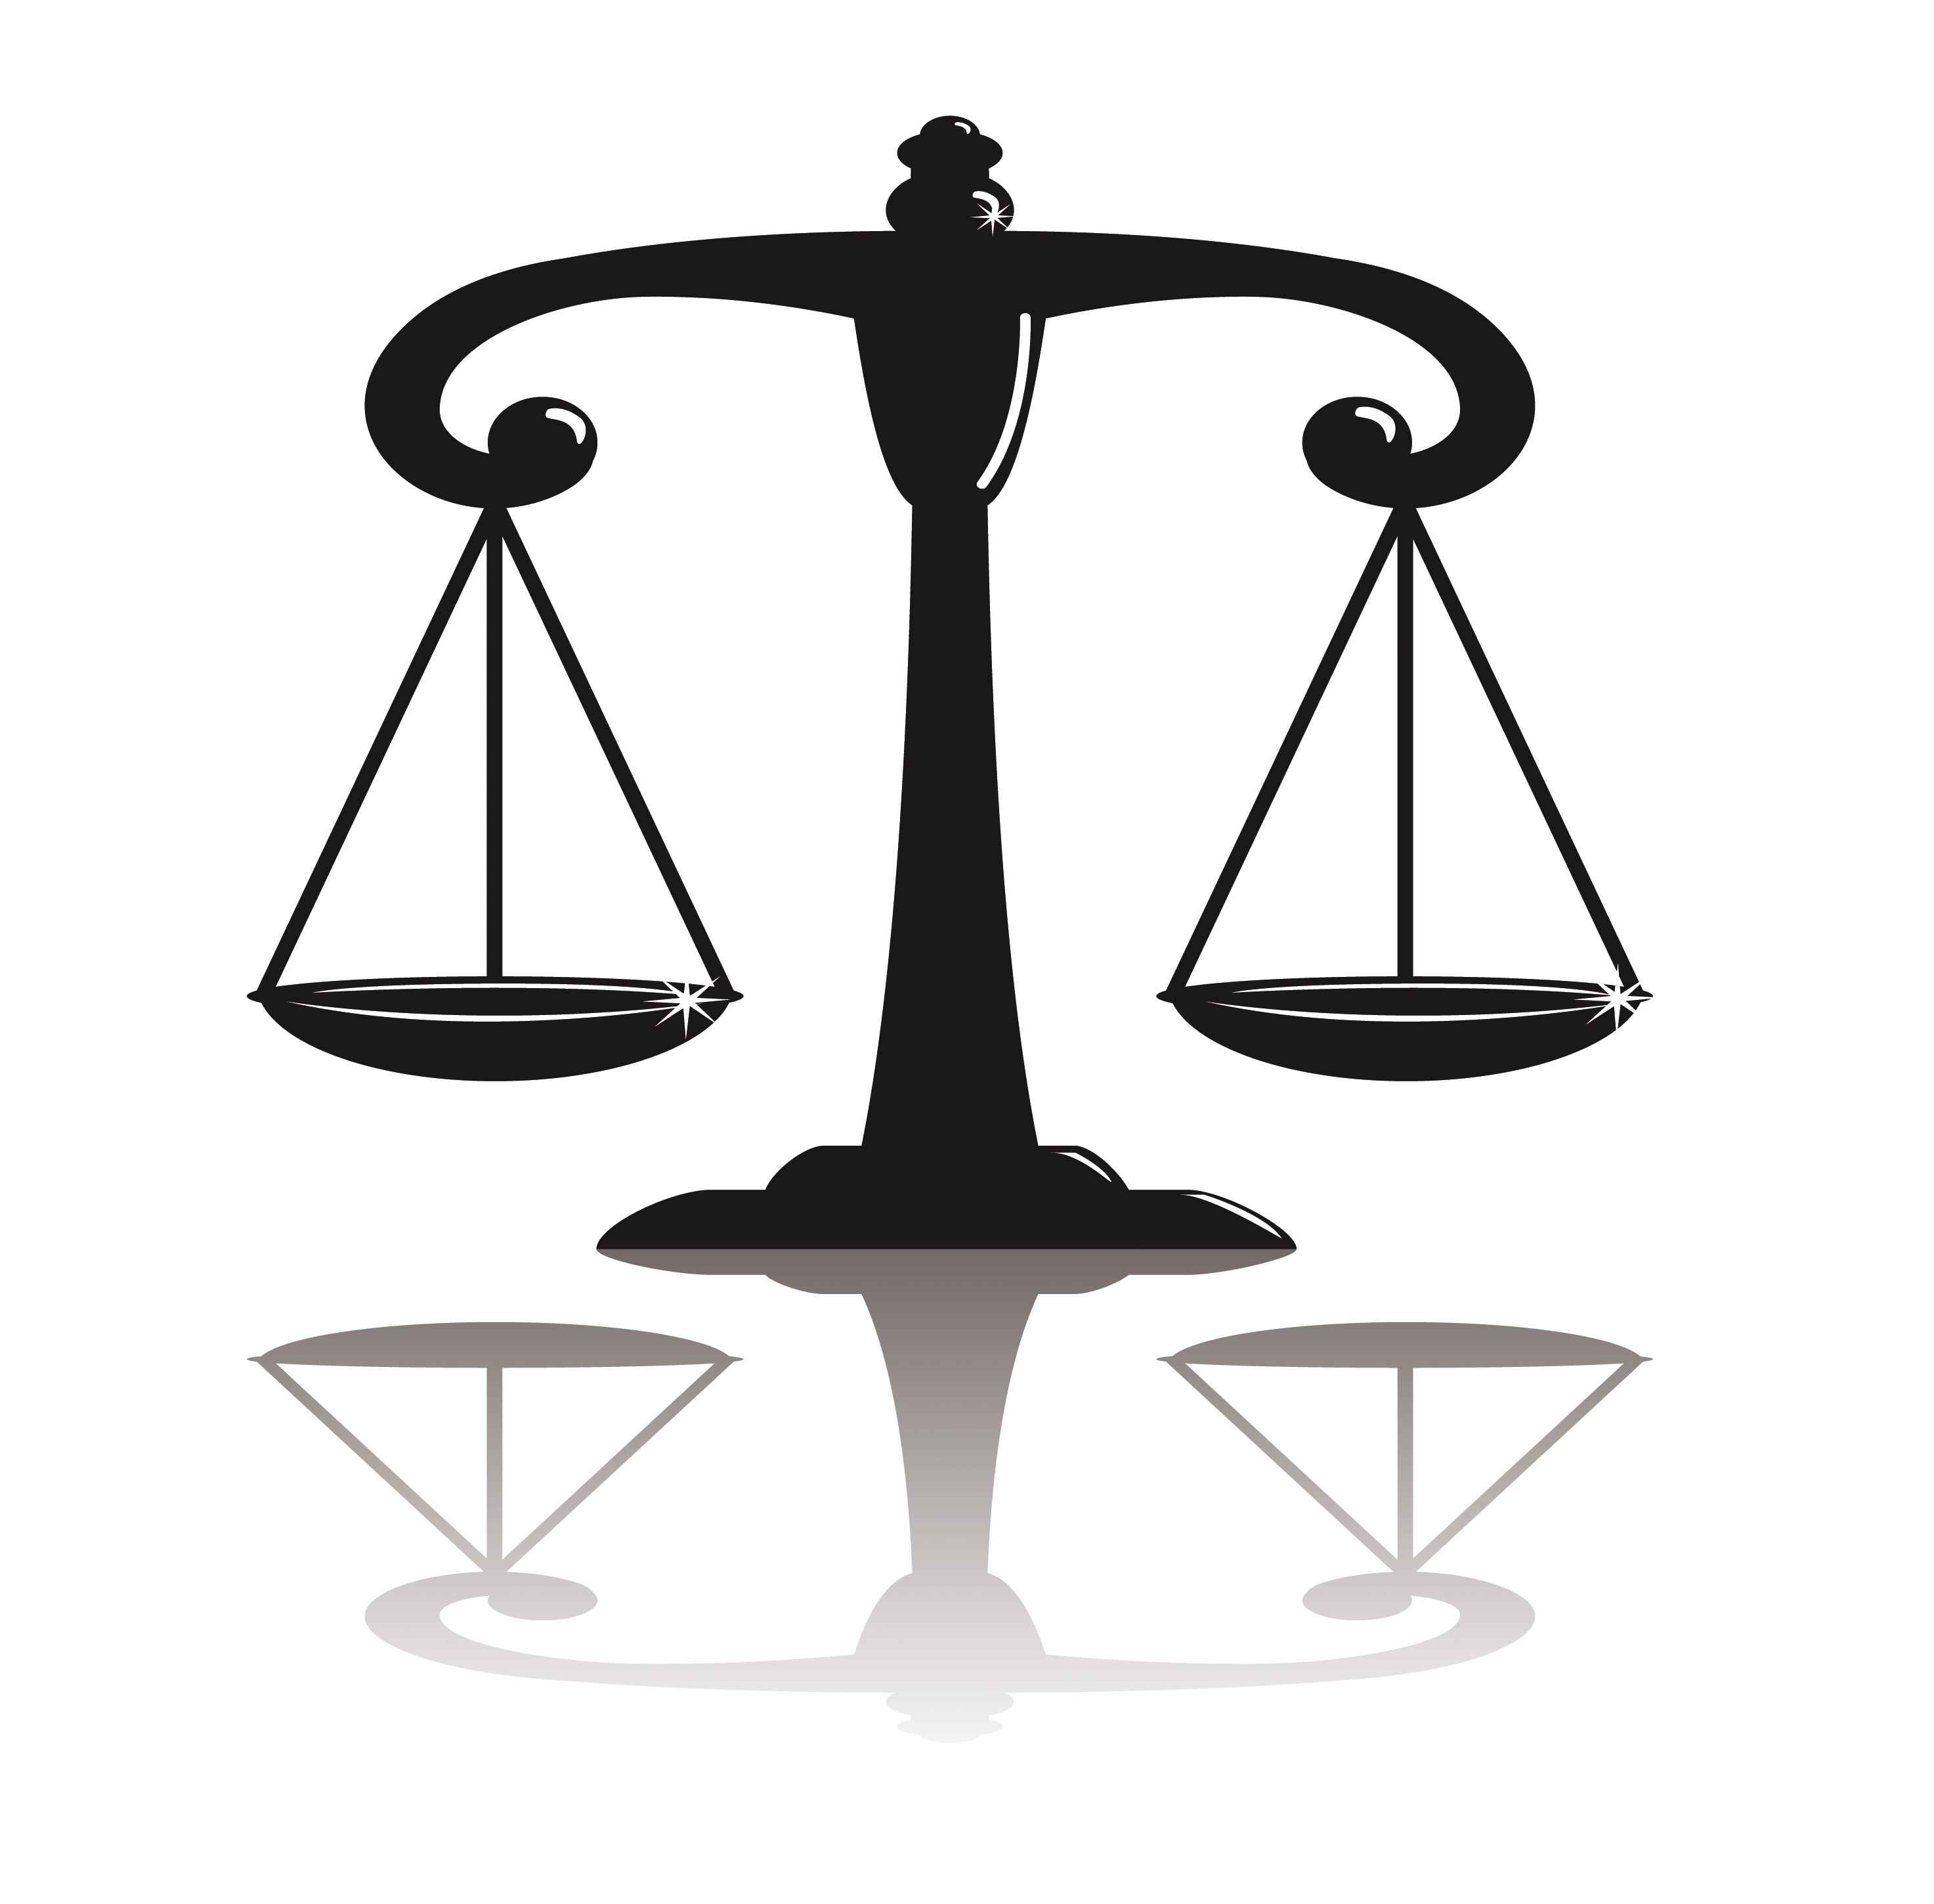 10 Justice Scale Clip Art Free Cliparts That You Can Download To You